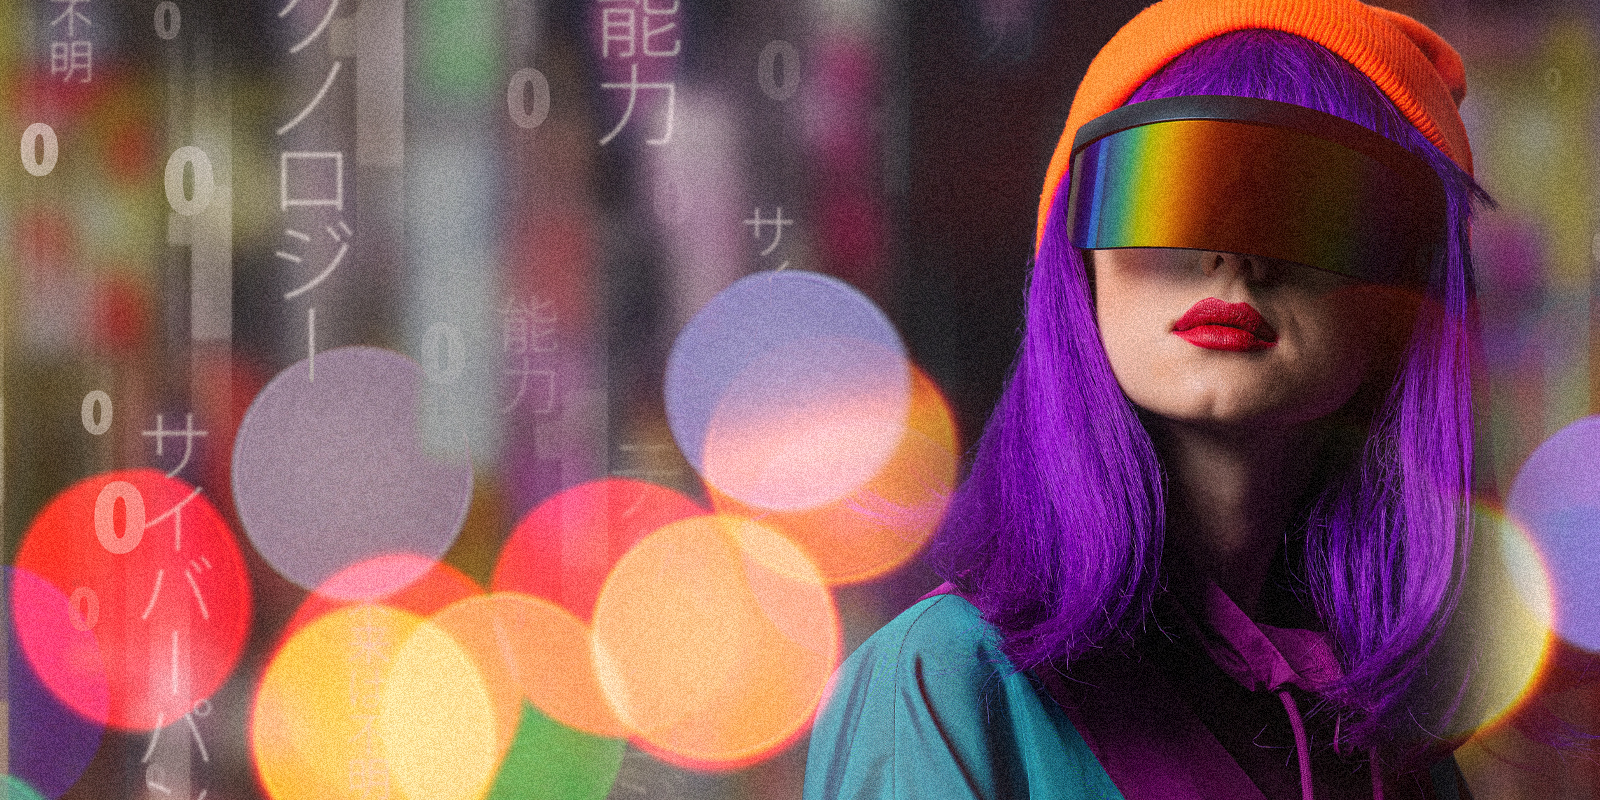 An image of a girl with purple hair with sun visors on, looking at falling vertical lines of code